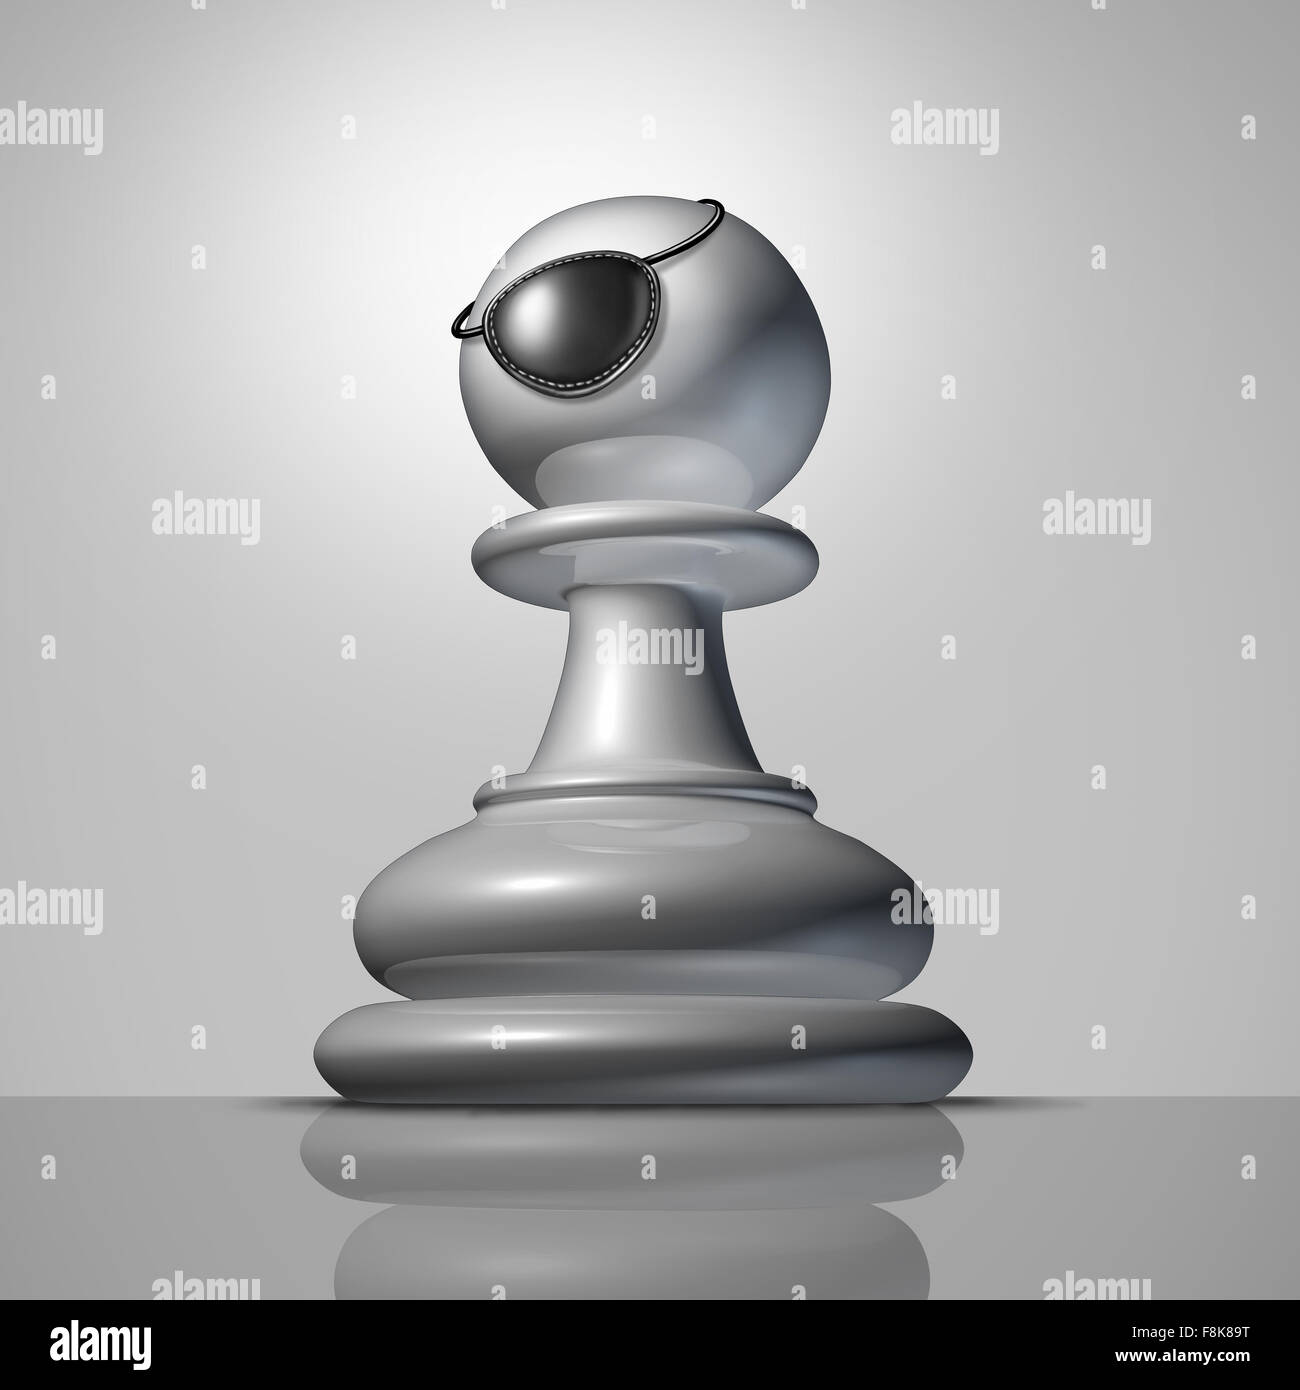 Stronger strategy business concept as a chess pawn piece wearing a pirate eyepatch or eye patch as a symbol and - Stock Image